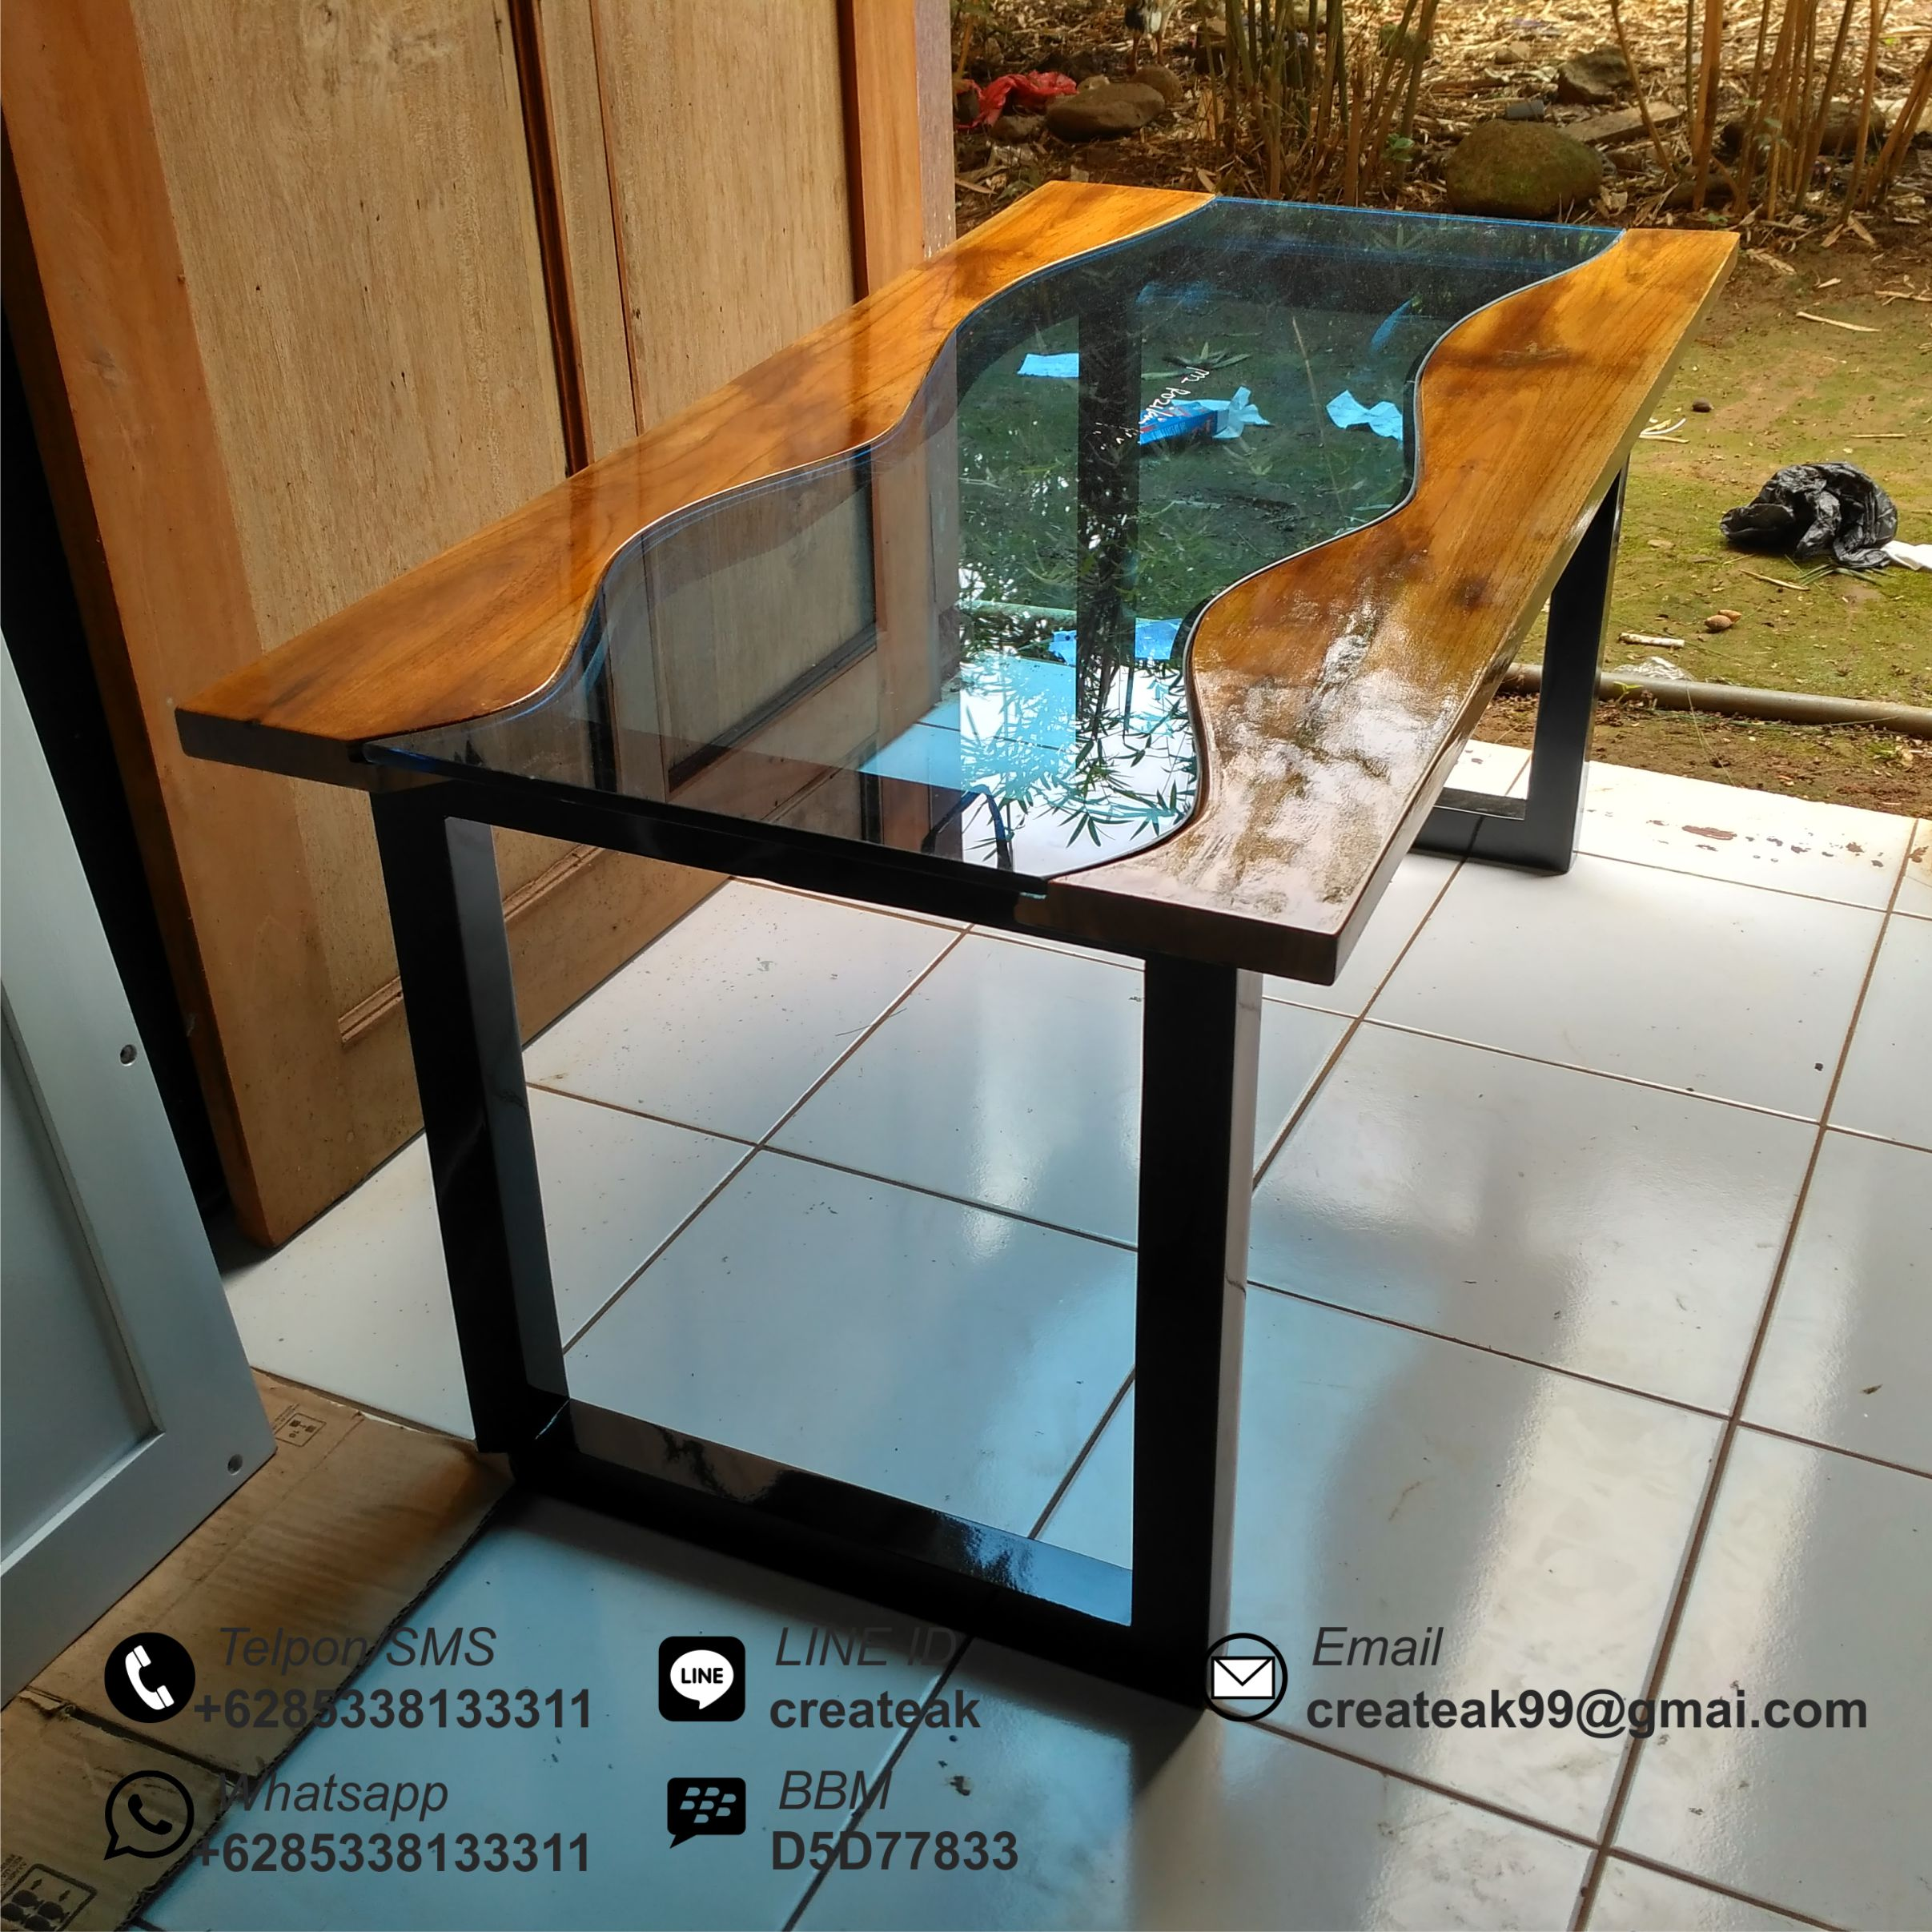 Harga Meja Kursi Tamu Minimalis Meja Kopi Minimalis Antik Createak Furniture Createak Furniture